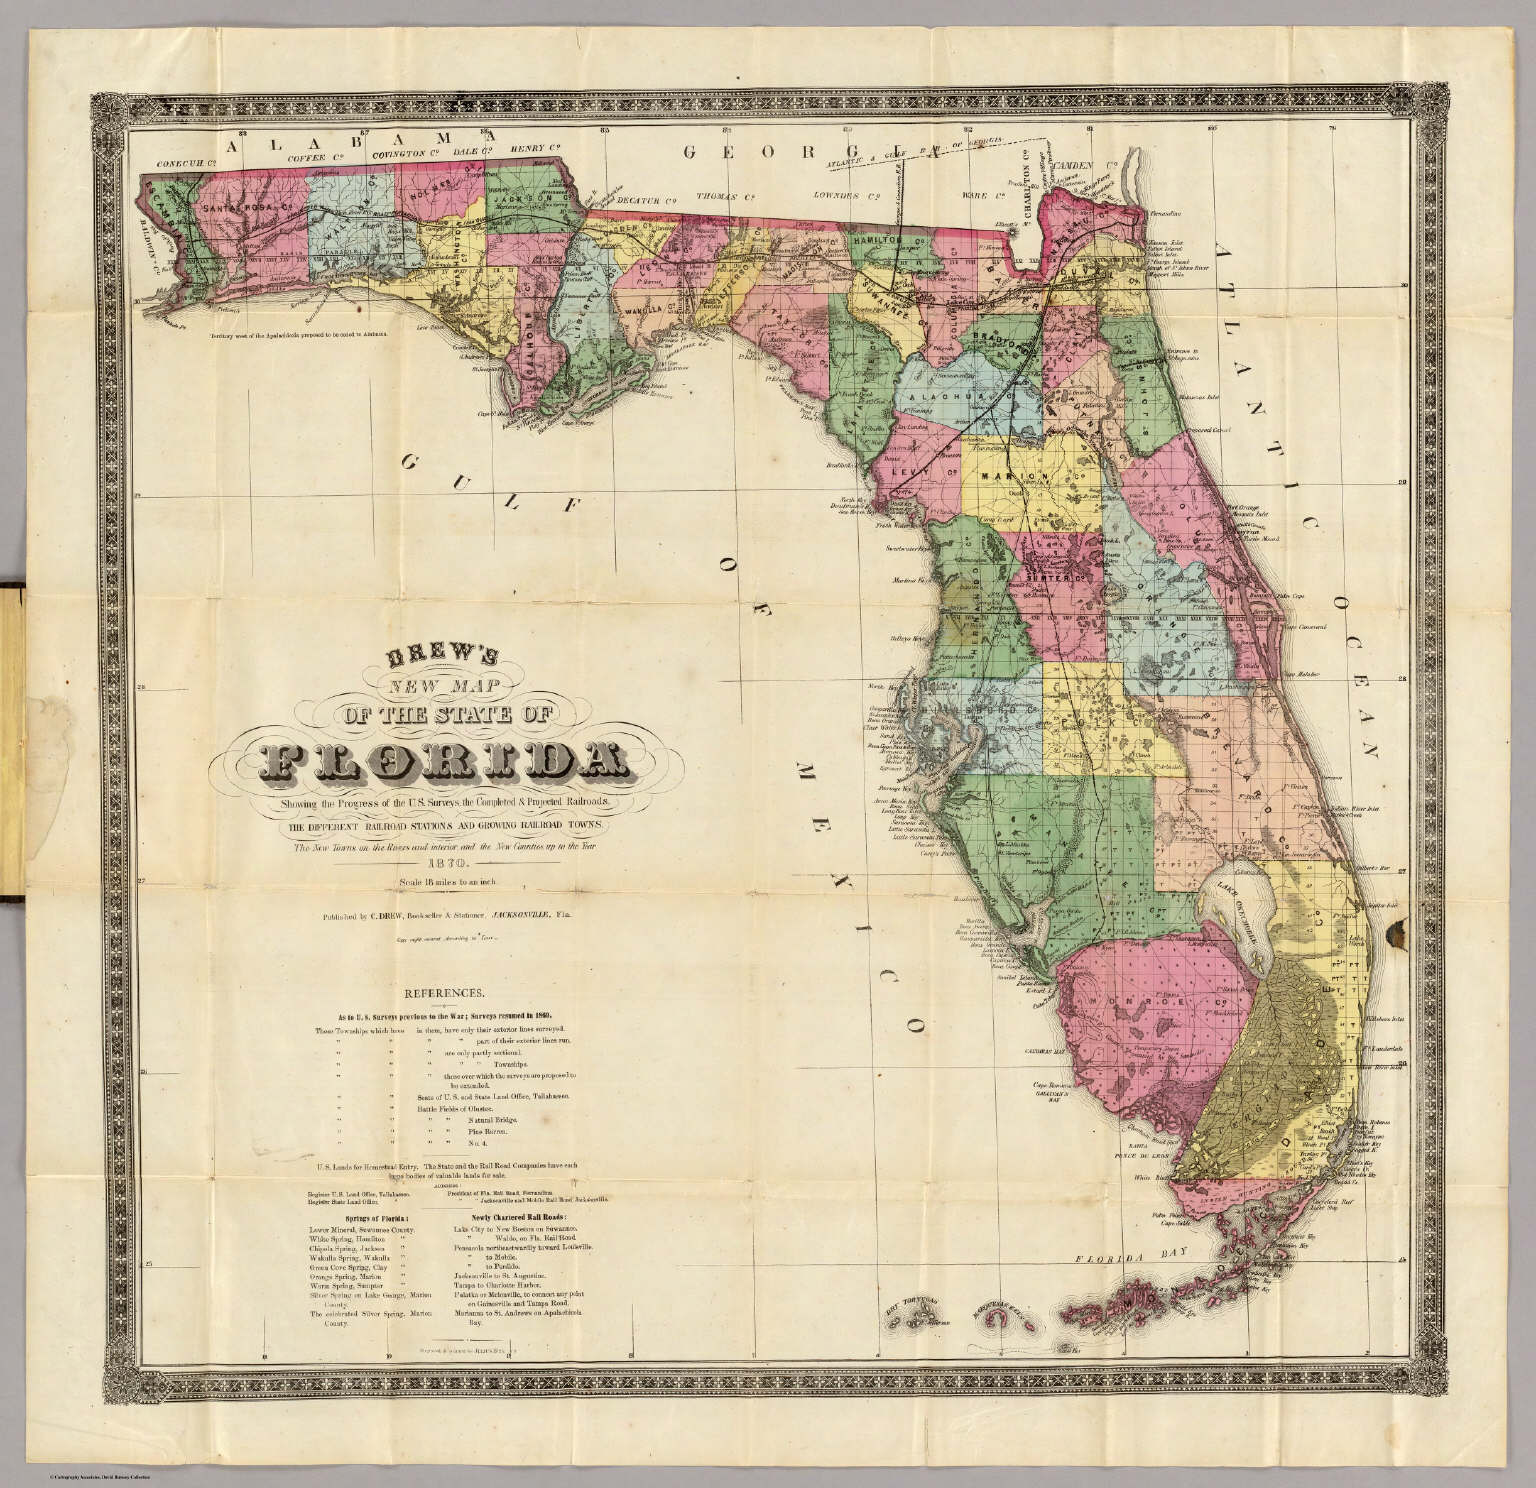 Drews New Map Of The State Of Florida David Rumsey Historical - Florida map picture